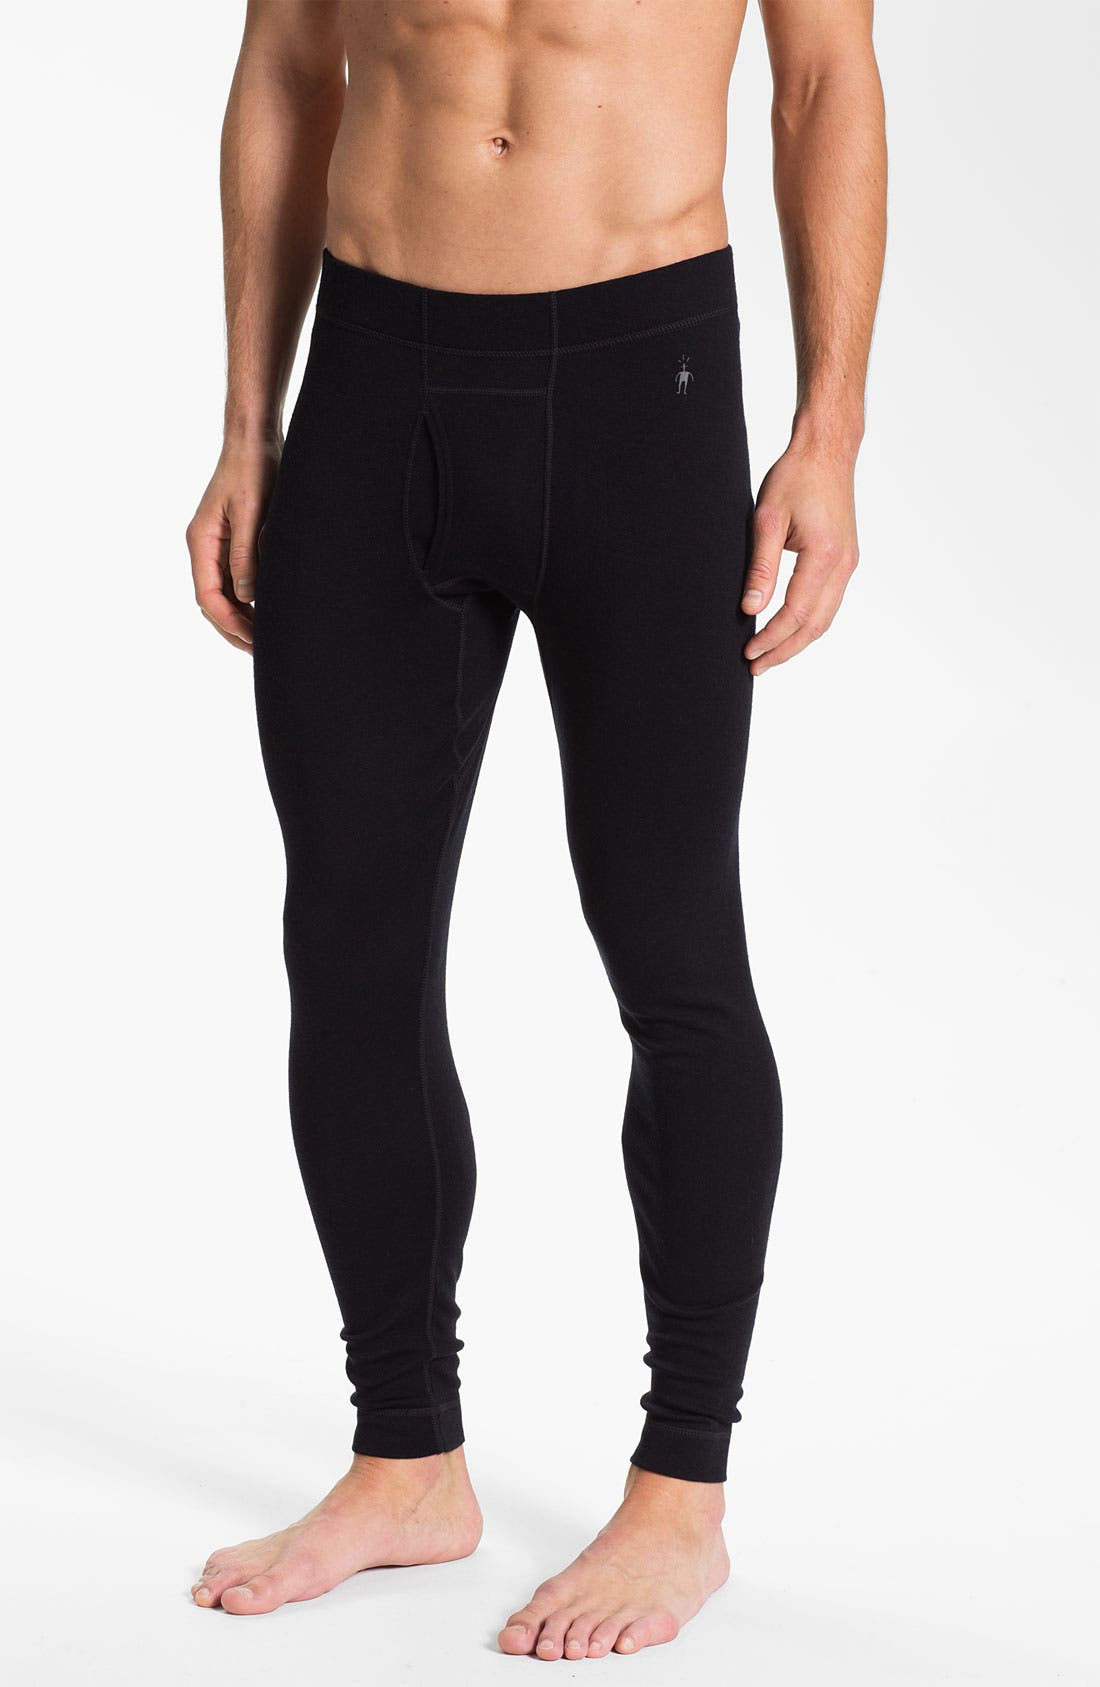 Main Image - Smartwool 'Midweight 250' Merino Wool Base Layer Tights